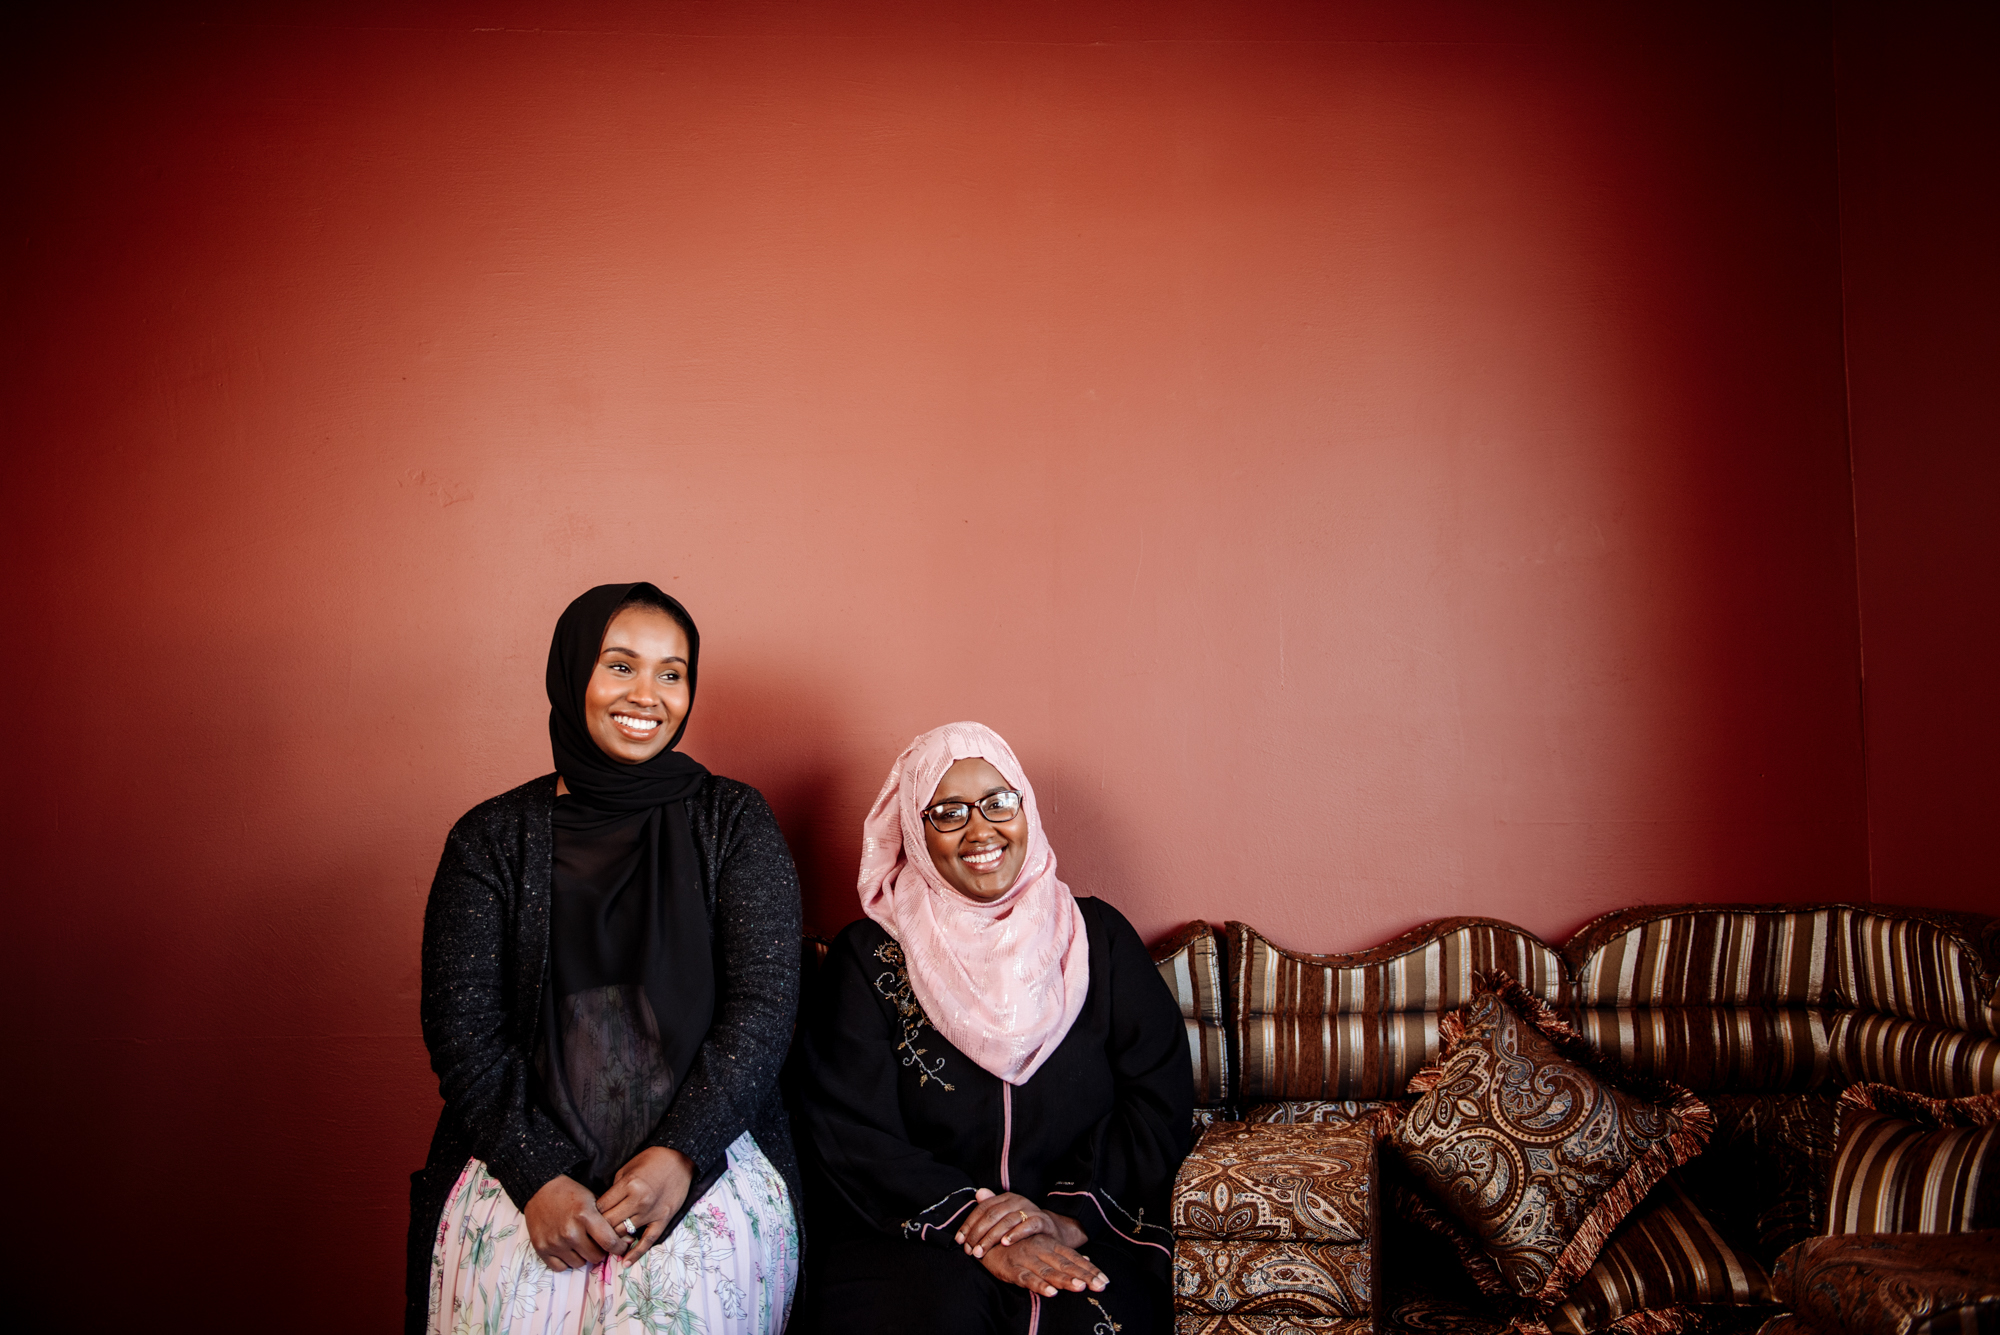 Farhiya Iman (left) and her sister Bisharo (right) at Nori Cafe in St. Cloud // Photo by Becca Dilley